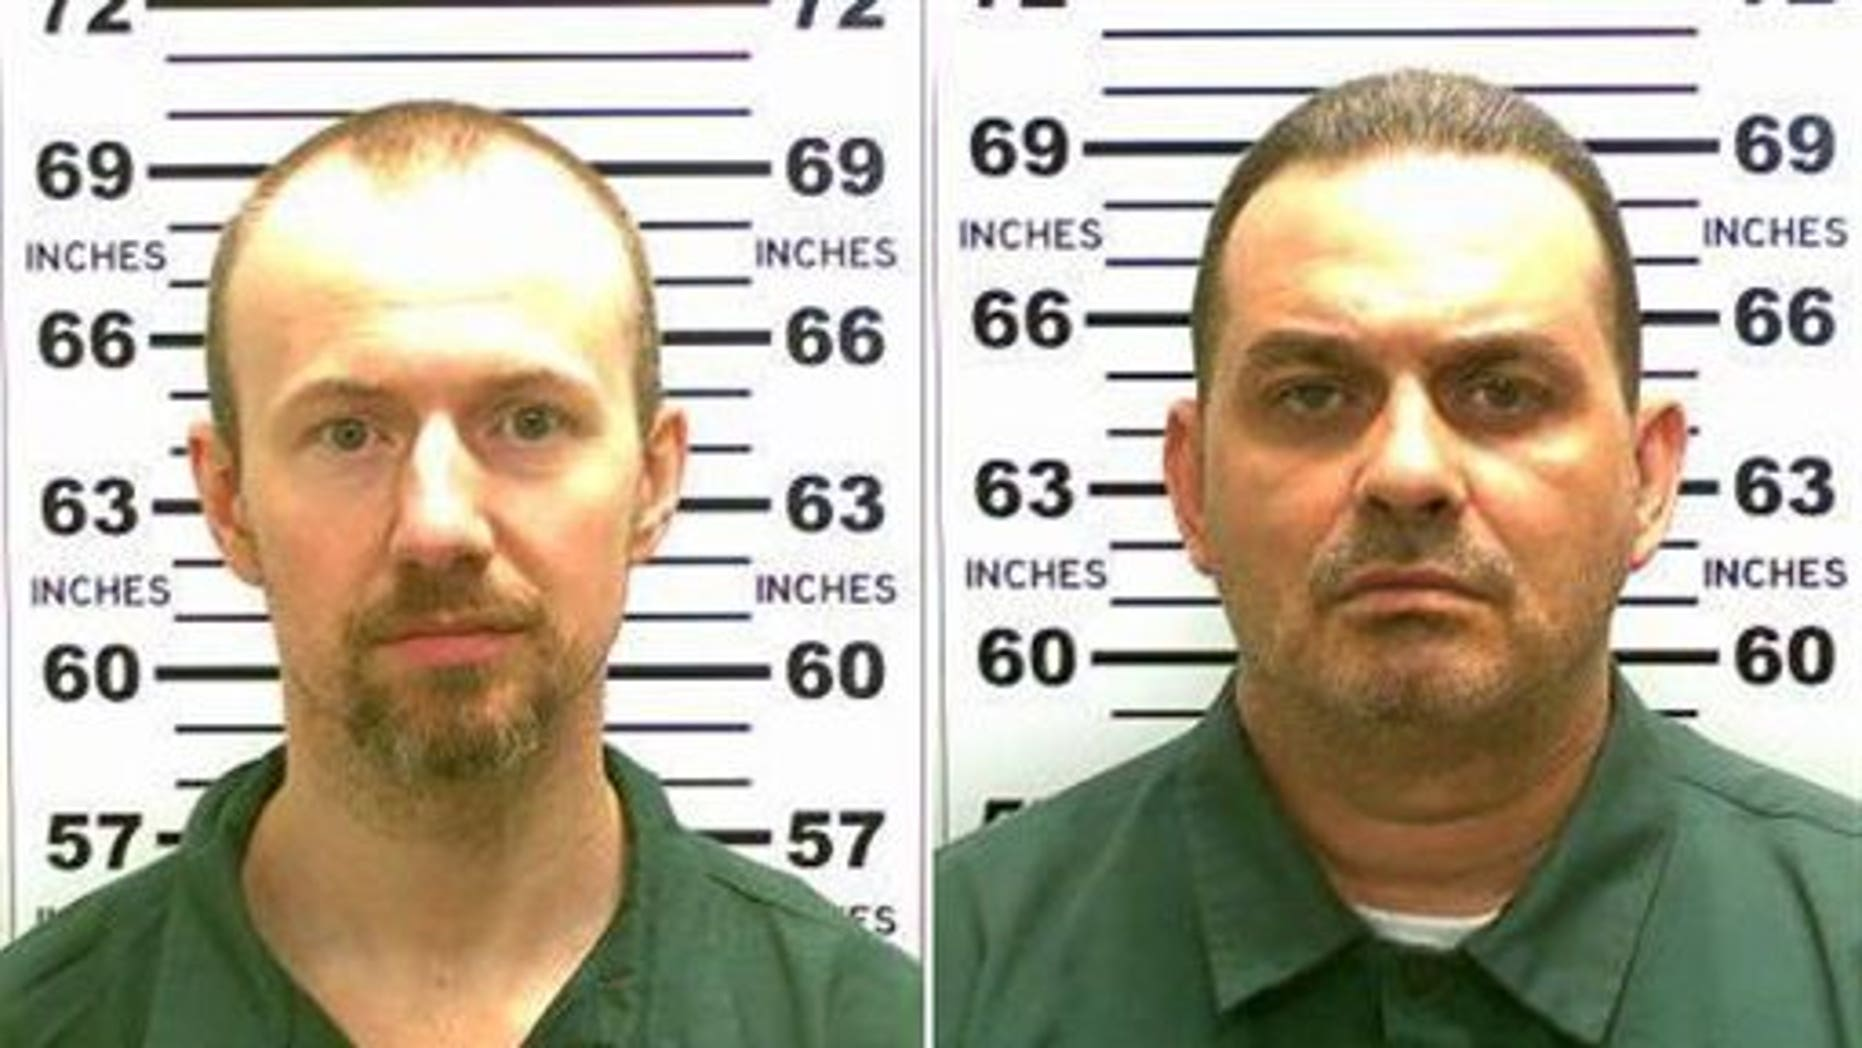 Richard Matt (right) and David Sweat. The two homicidal inmates famously broke out of prison in 2015.